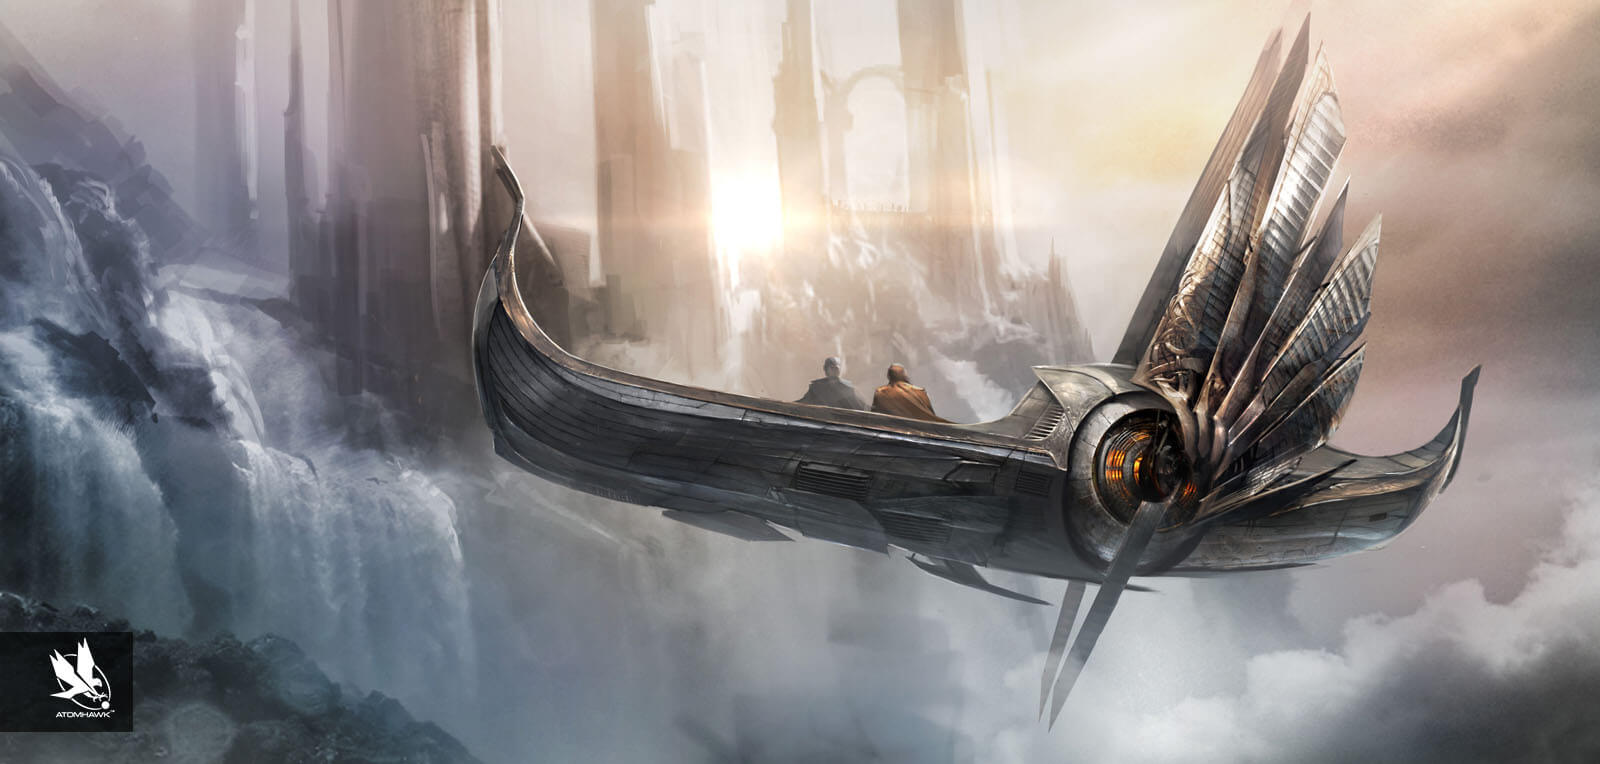 Atomhawk_Marvel_Thor-The-Dark-World_Concept-Art_Spacecraft-Design_Asgardian-Skiff.jpg